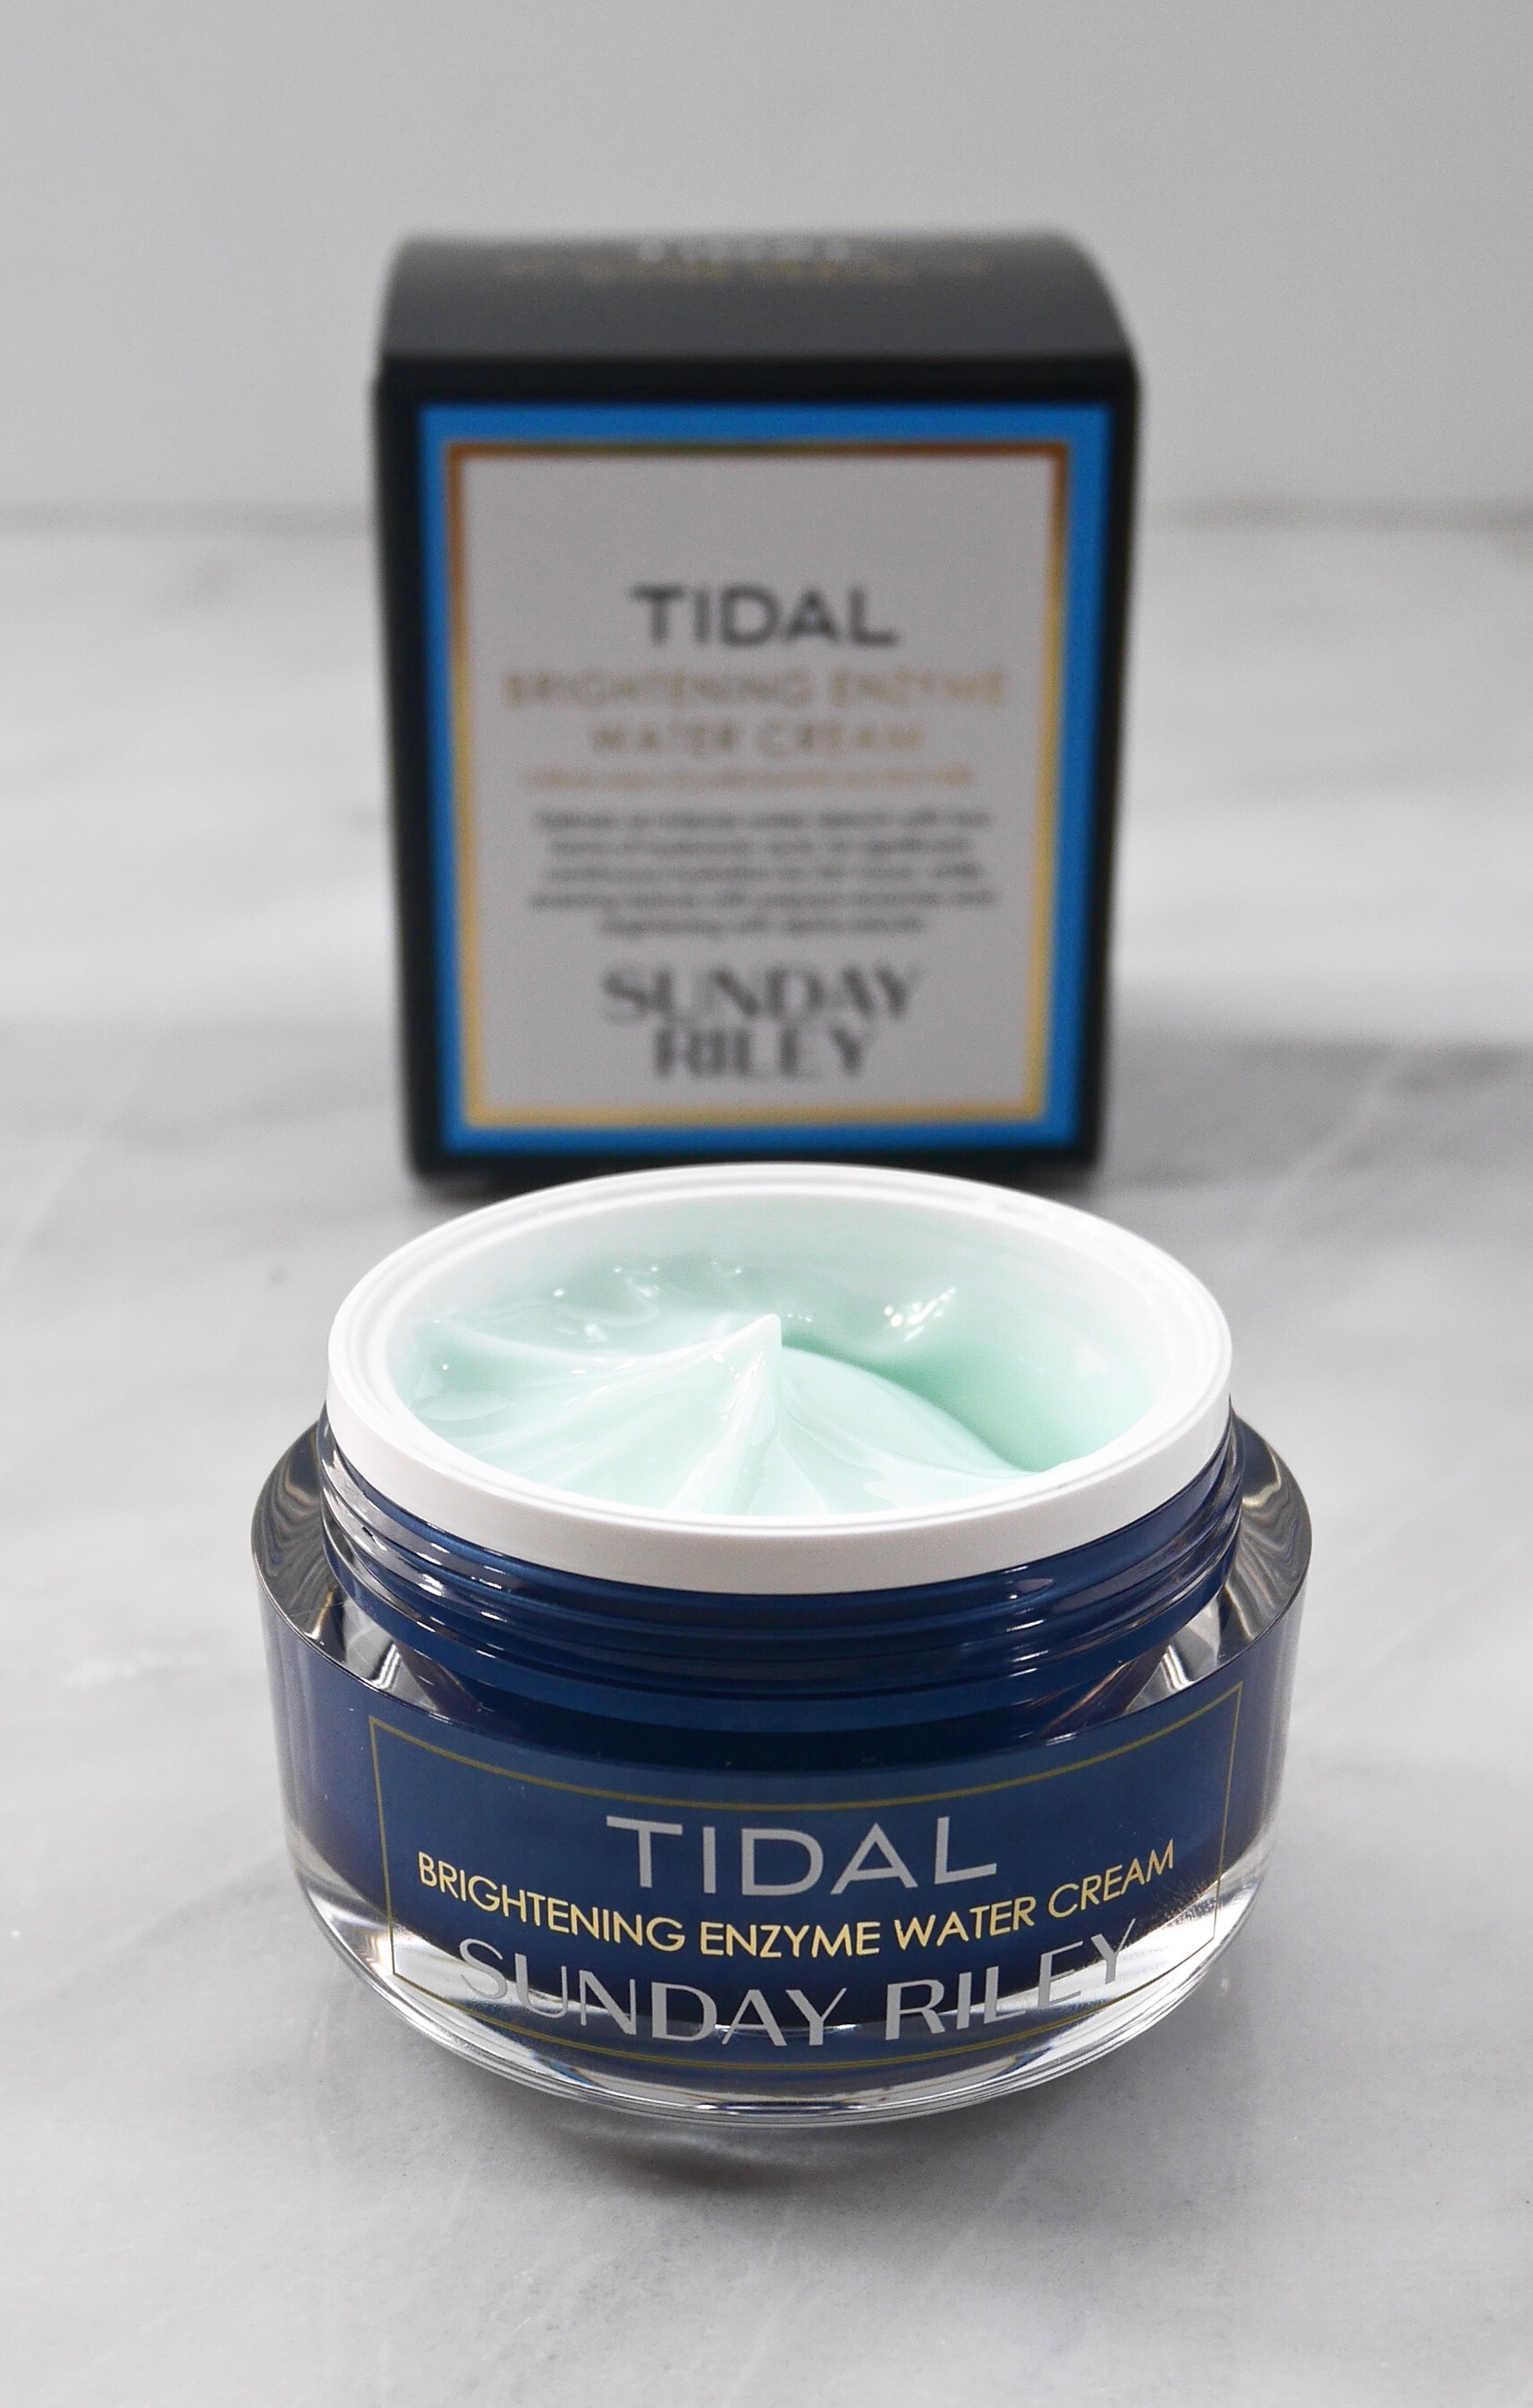 My Thoughts: Sunday Riley Tidal Brightening Enzyme Water Cream